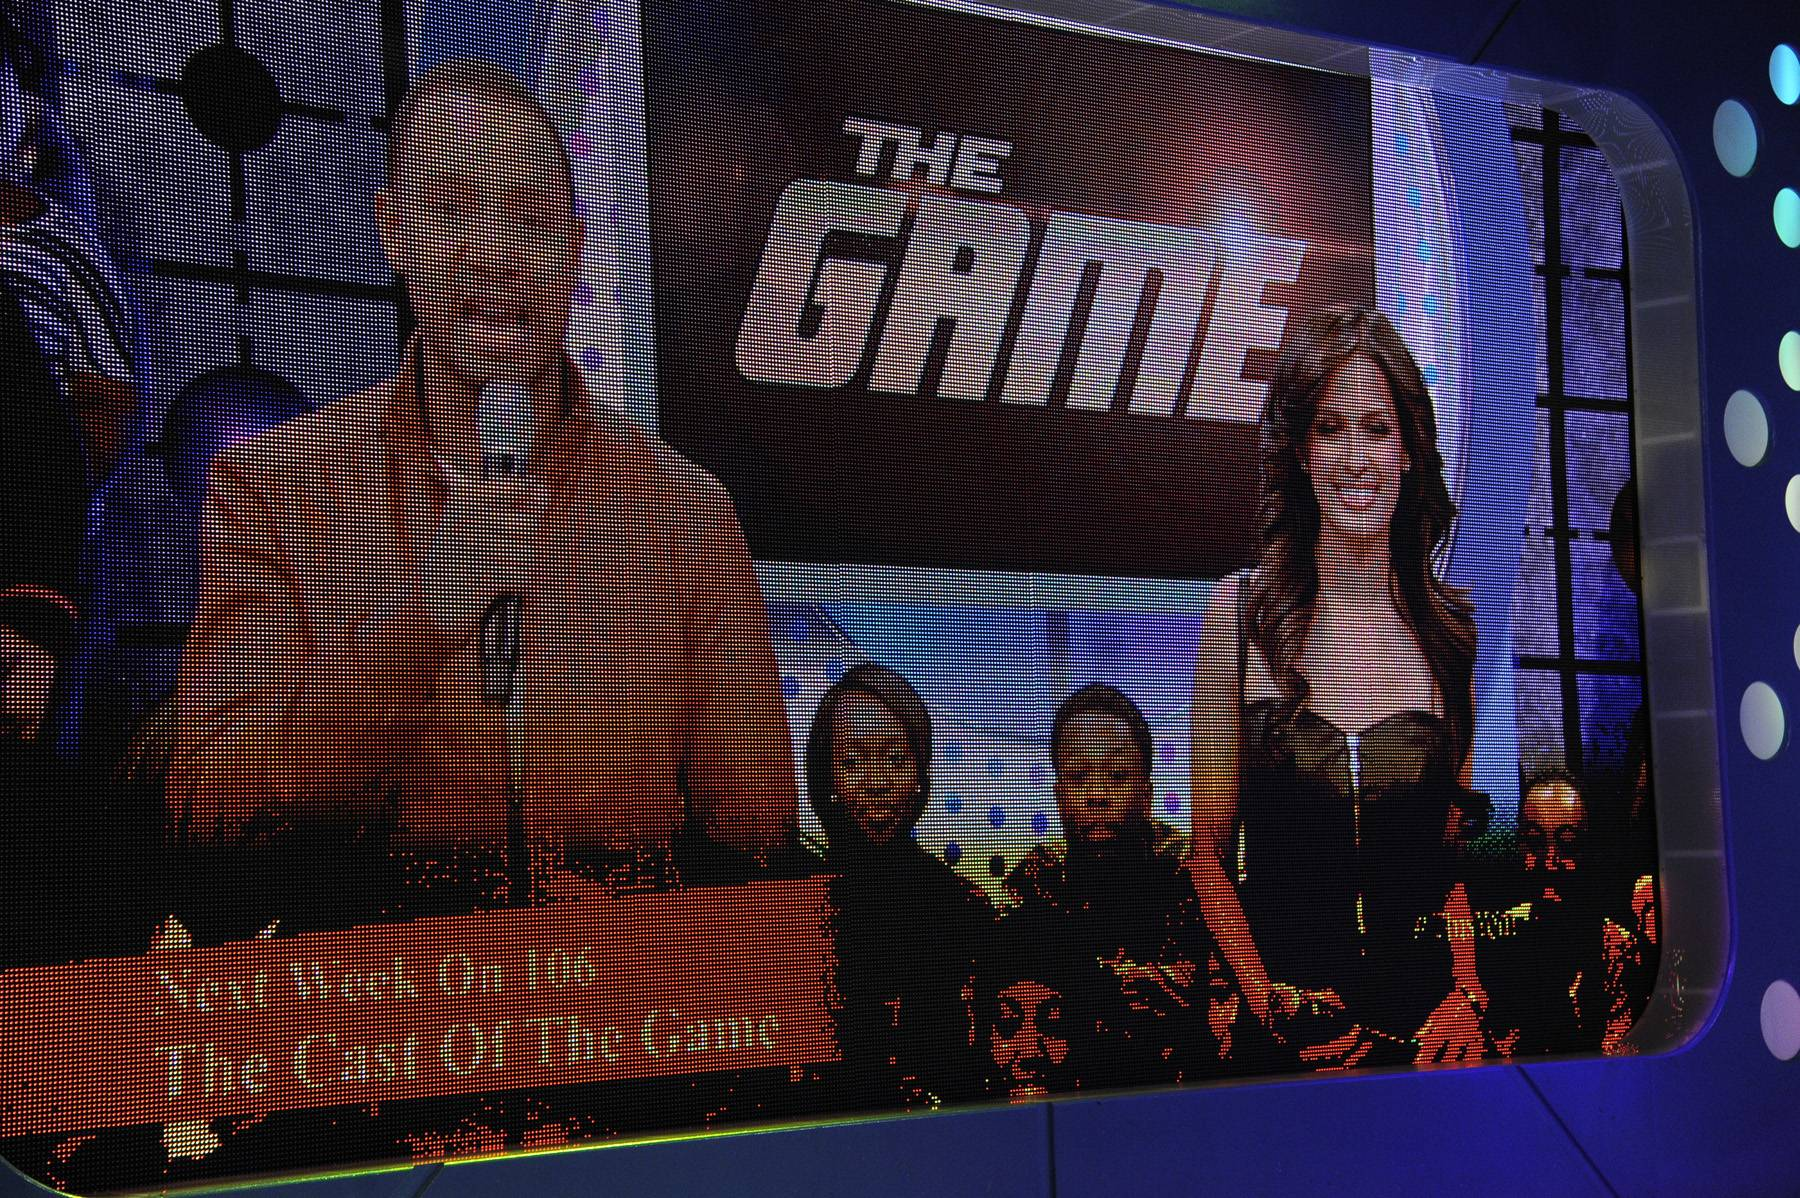 Bring on the Game - Terrence J and Rocsi Diaz announce that the cast of The Game will be on set next week at 106 & Park, January 3, 2012. (Photo: John Ricard / BET)